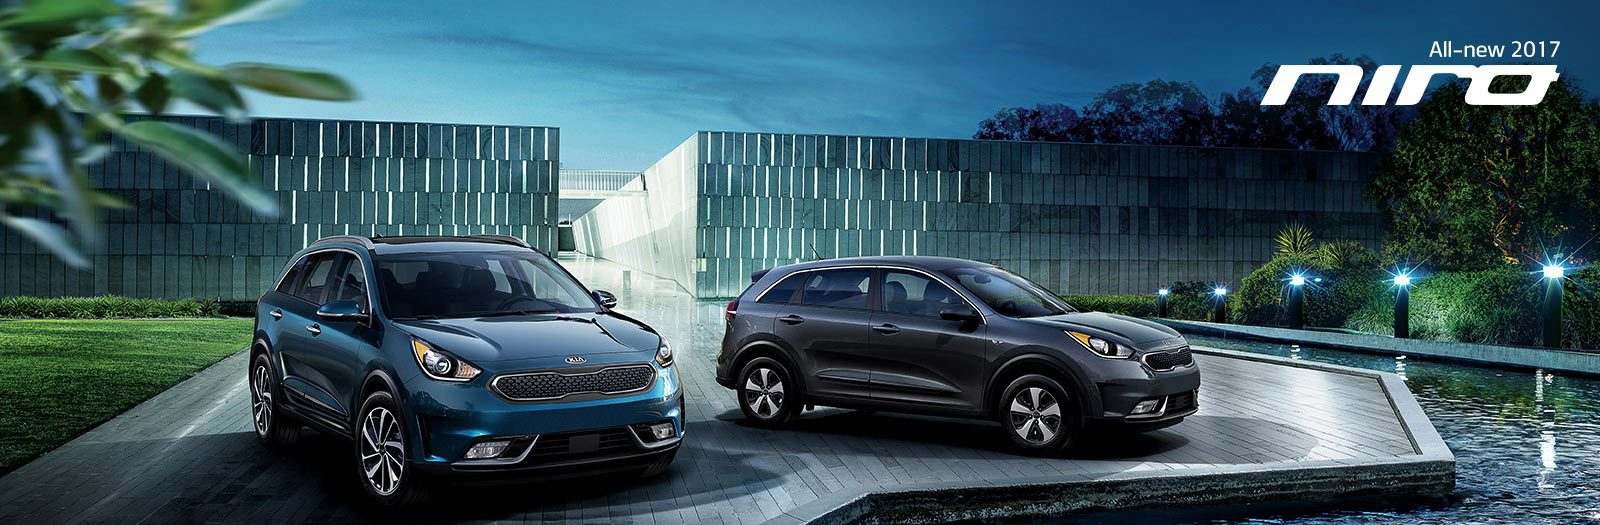 All New 2017 Niro Scarboro Kia